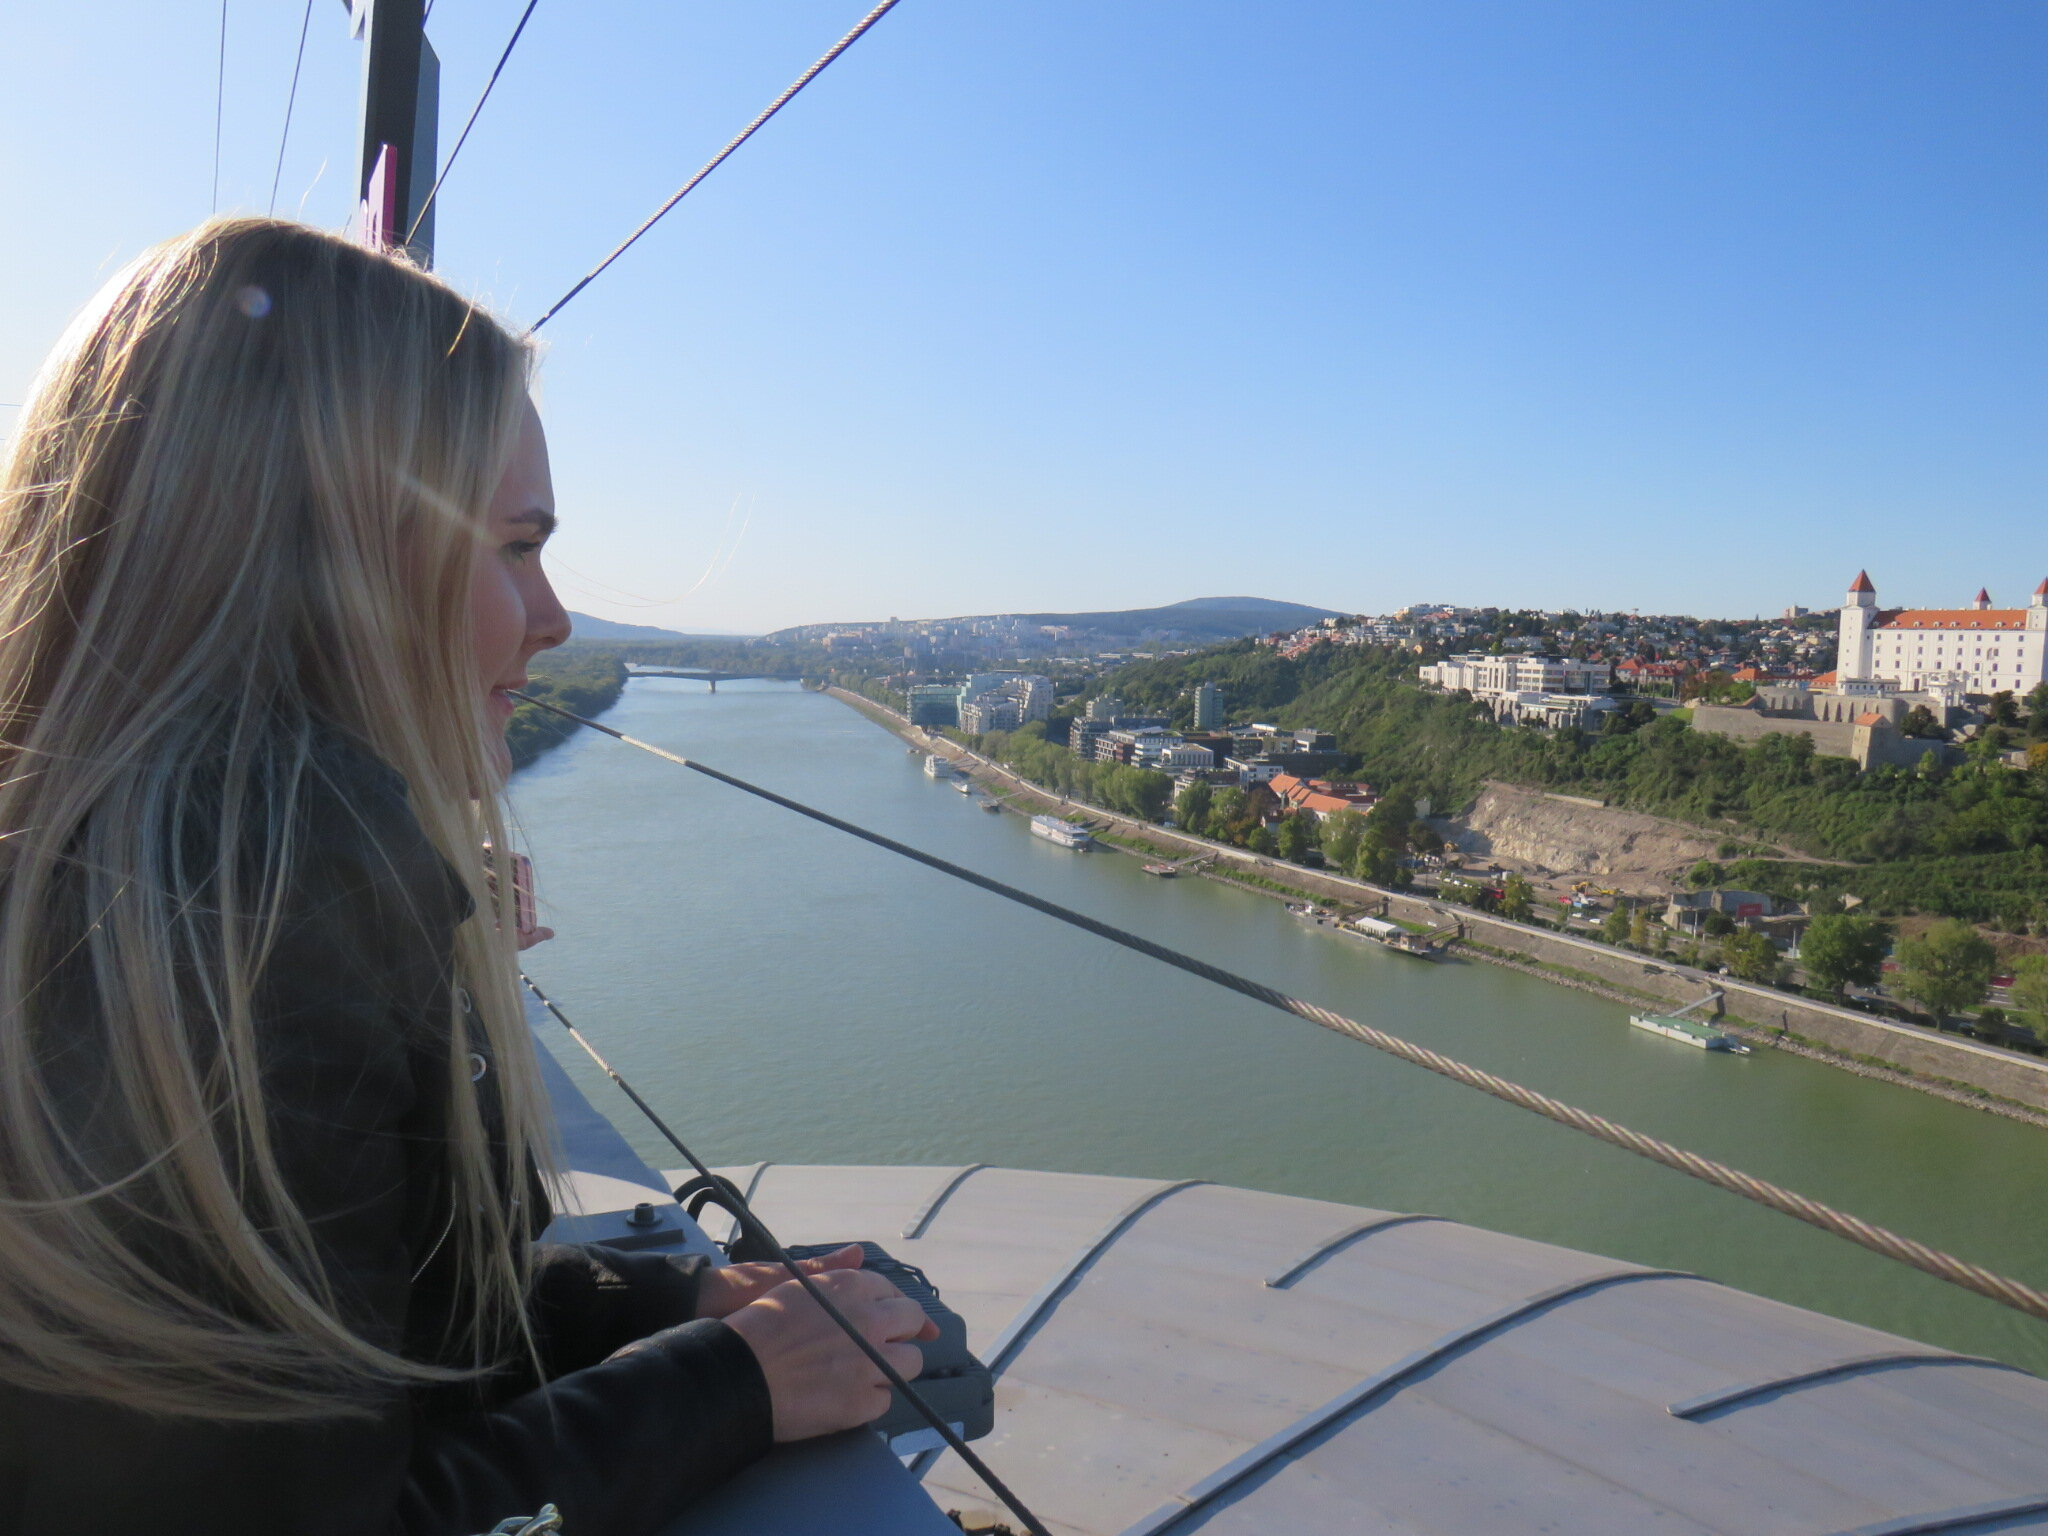 Ewelina, enjoying the view from the UFO Observation Deck